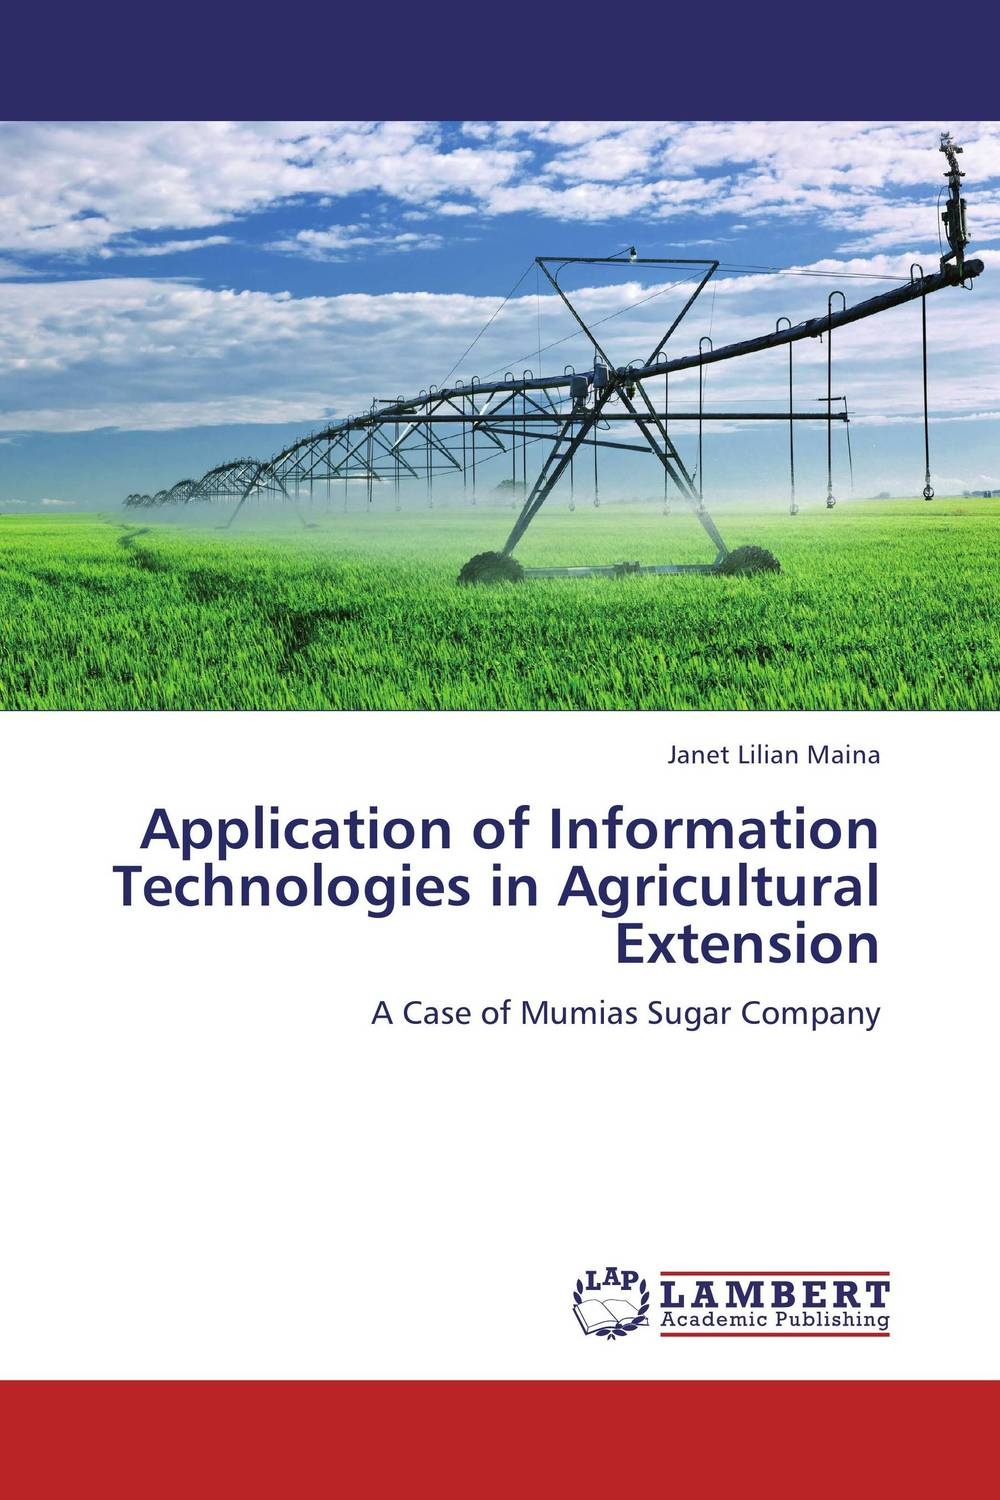 Application of Information Technologies in Agricultural Extension barton wallpapers фотообои m08803 300х270 см